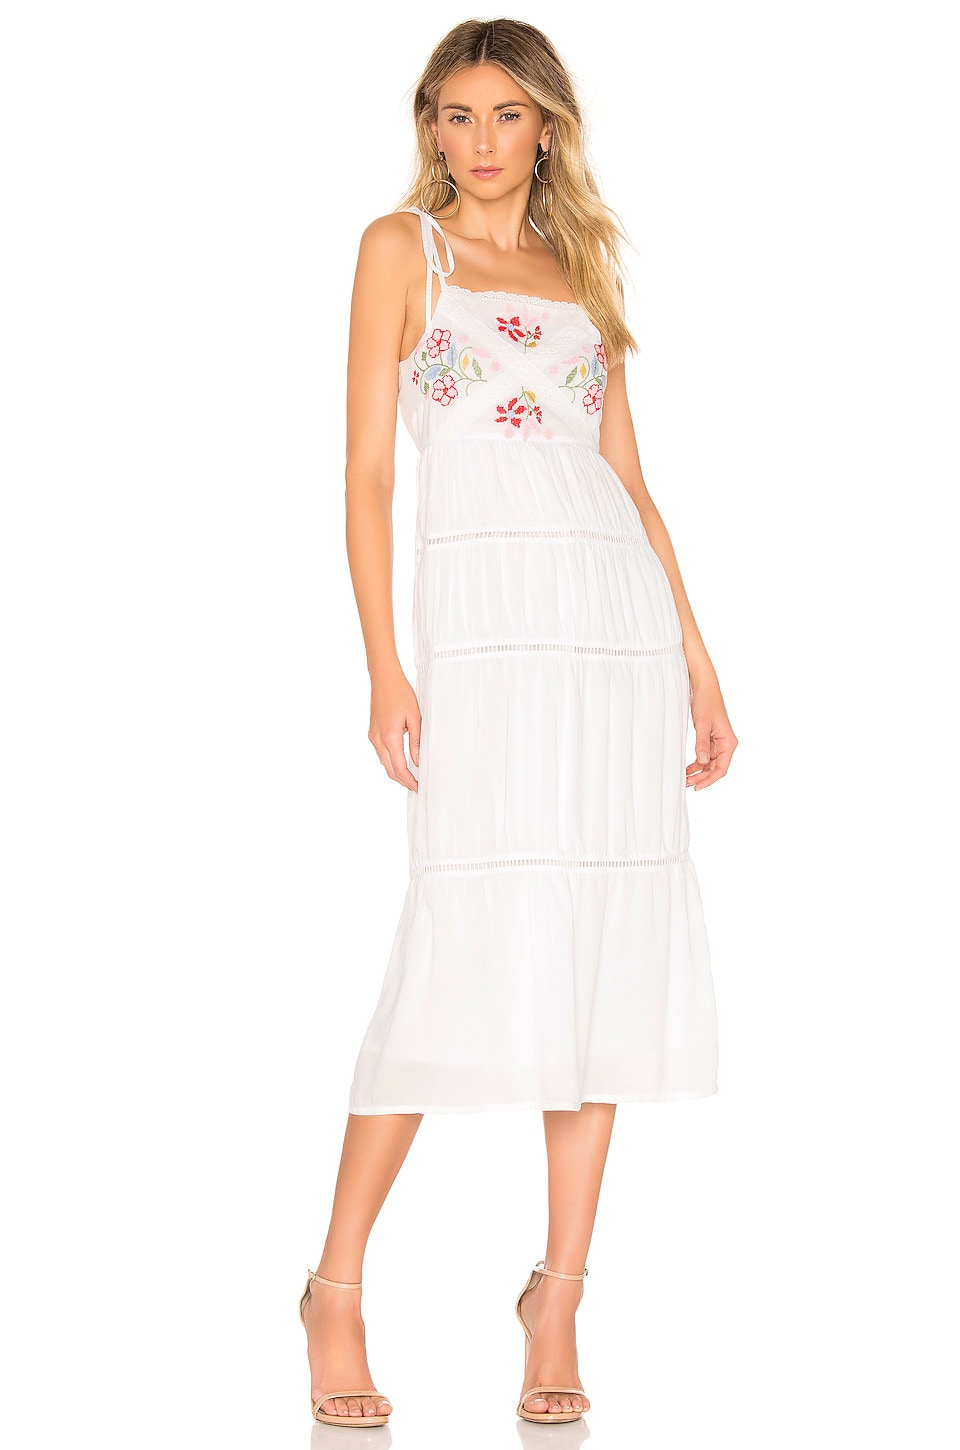 Lovers + Friends Tally Midi Dress in White